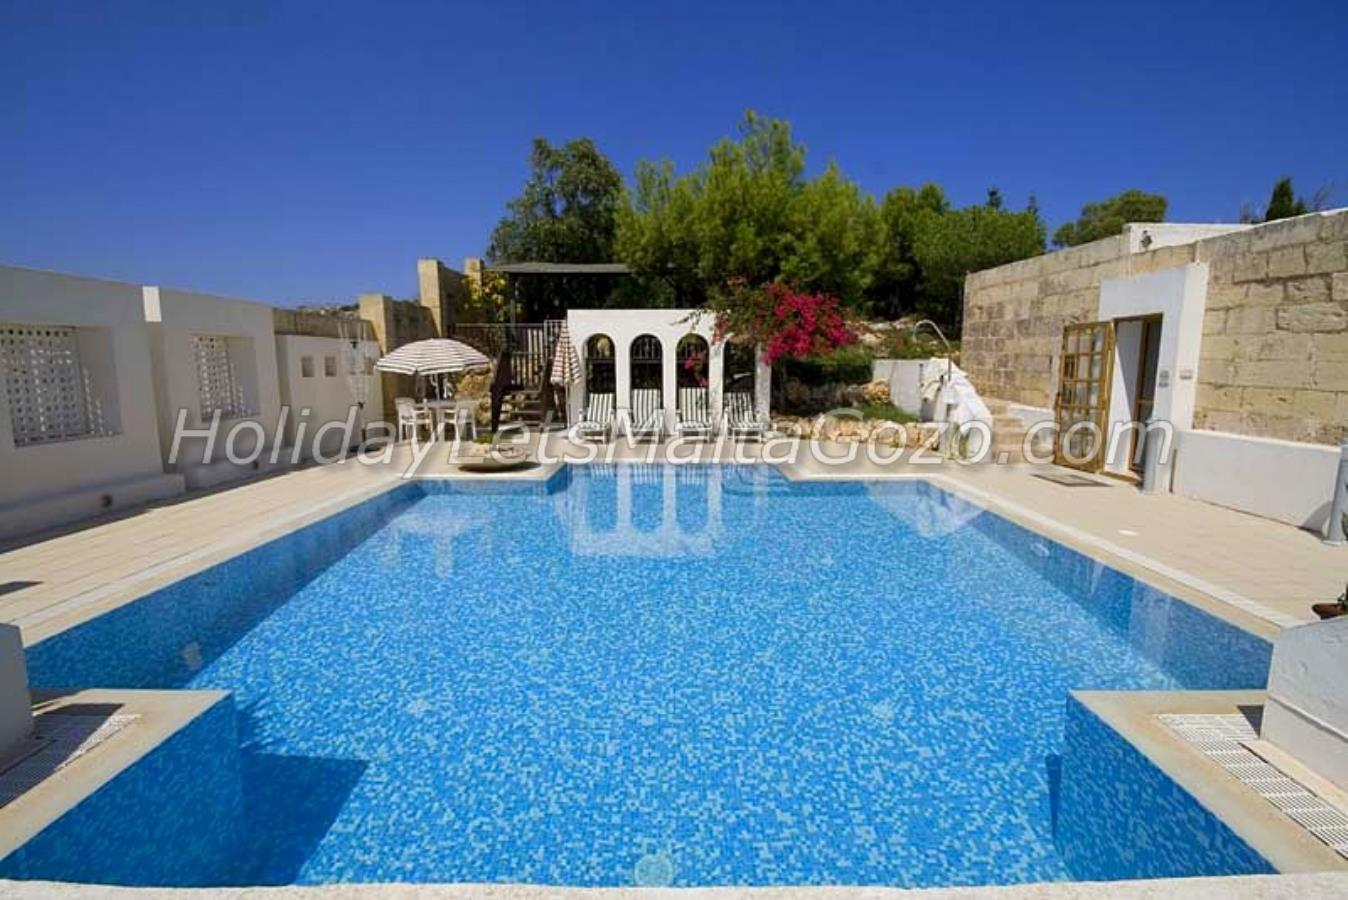 Superb Private Swimming Pool in the shape of a Cross